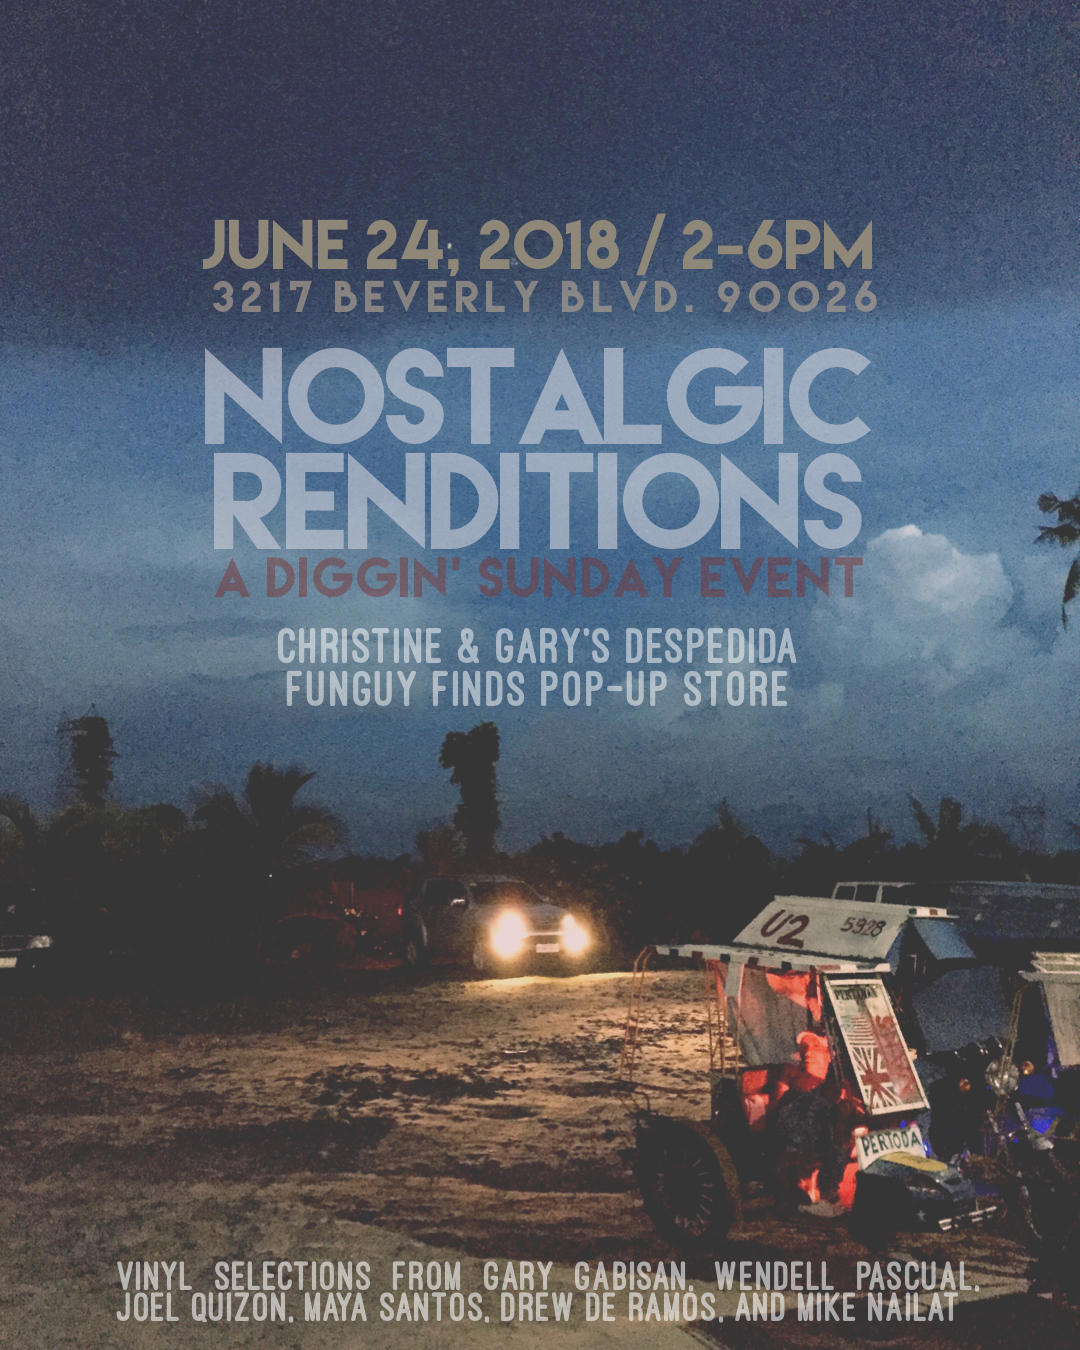 Nostalgic Renditions: A Diggin' Sunday Event The theme of Nostalgia in 2018 represented through music and vintage artifacts.   This is also a special despedida event for  Christine Bacareza Balance (scholar and author of Tropical Renditions) and  Gary Gacula Gabisan (filmmaker, musician, artist) as we wish them luck on their move to the East Coast.  Featuring: - A special  FUNGUY FINDS  POP-UP STORE featuring vintage merchandise and retro-inspired plantlife arrangements curated and designed by  Wendell Pascual . - Featuring DJ's from  DIGGIN' SUNDAY (the original Historic Filipinotown afternoon chillspot): Gary Gabisan/un-g (P.I.C., The Jack Lords Orchestra, Raket & Rambol) Wendell Pascual/asceticfish (Funguy Finds, Aziatic Rhythmz) Joel Quizon/joelquiz (Disco Manila, Red Key Experiment, Raket & Rambol) Maya Santos/equanimous1 (Soul In the Park, Rare Medium) Drew de Ramos/a growl translucent (The Miles Approach, Red Key Experiment) Mike Nailat/waxstyles (This Filipino American Life/Tuesday Night at the Cafe)